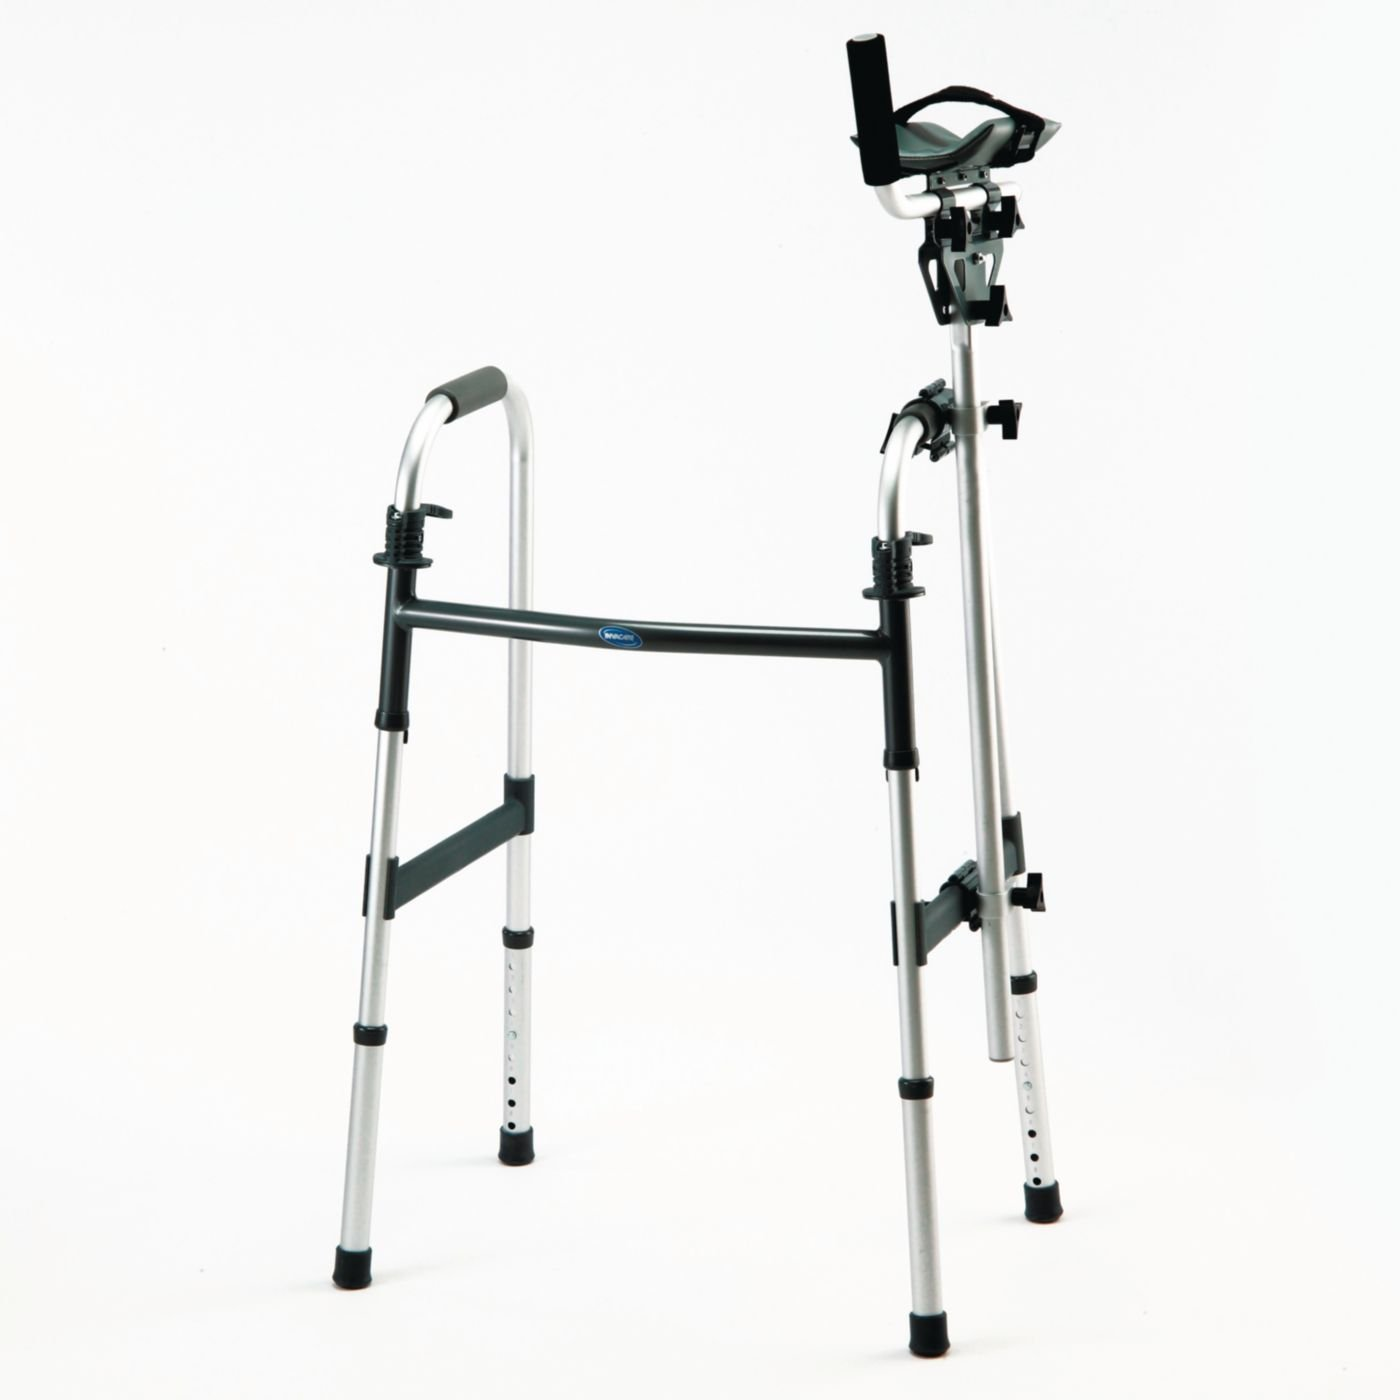 Physical Therapy Supplies 081006303 Platform Attachment Shape Amazon Co Uk Welcome